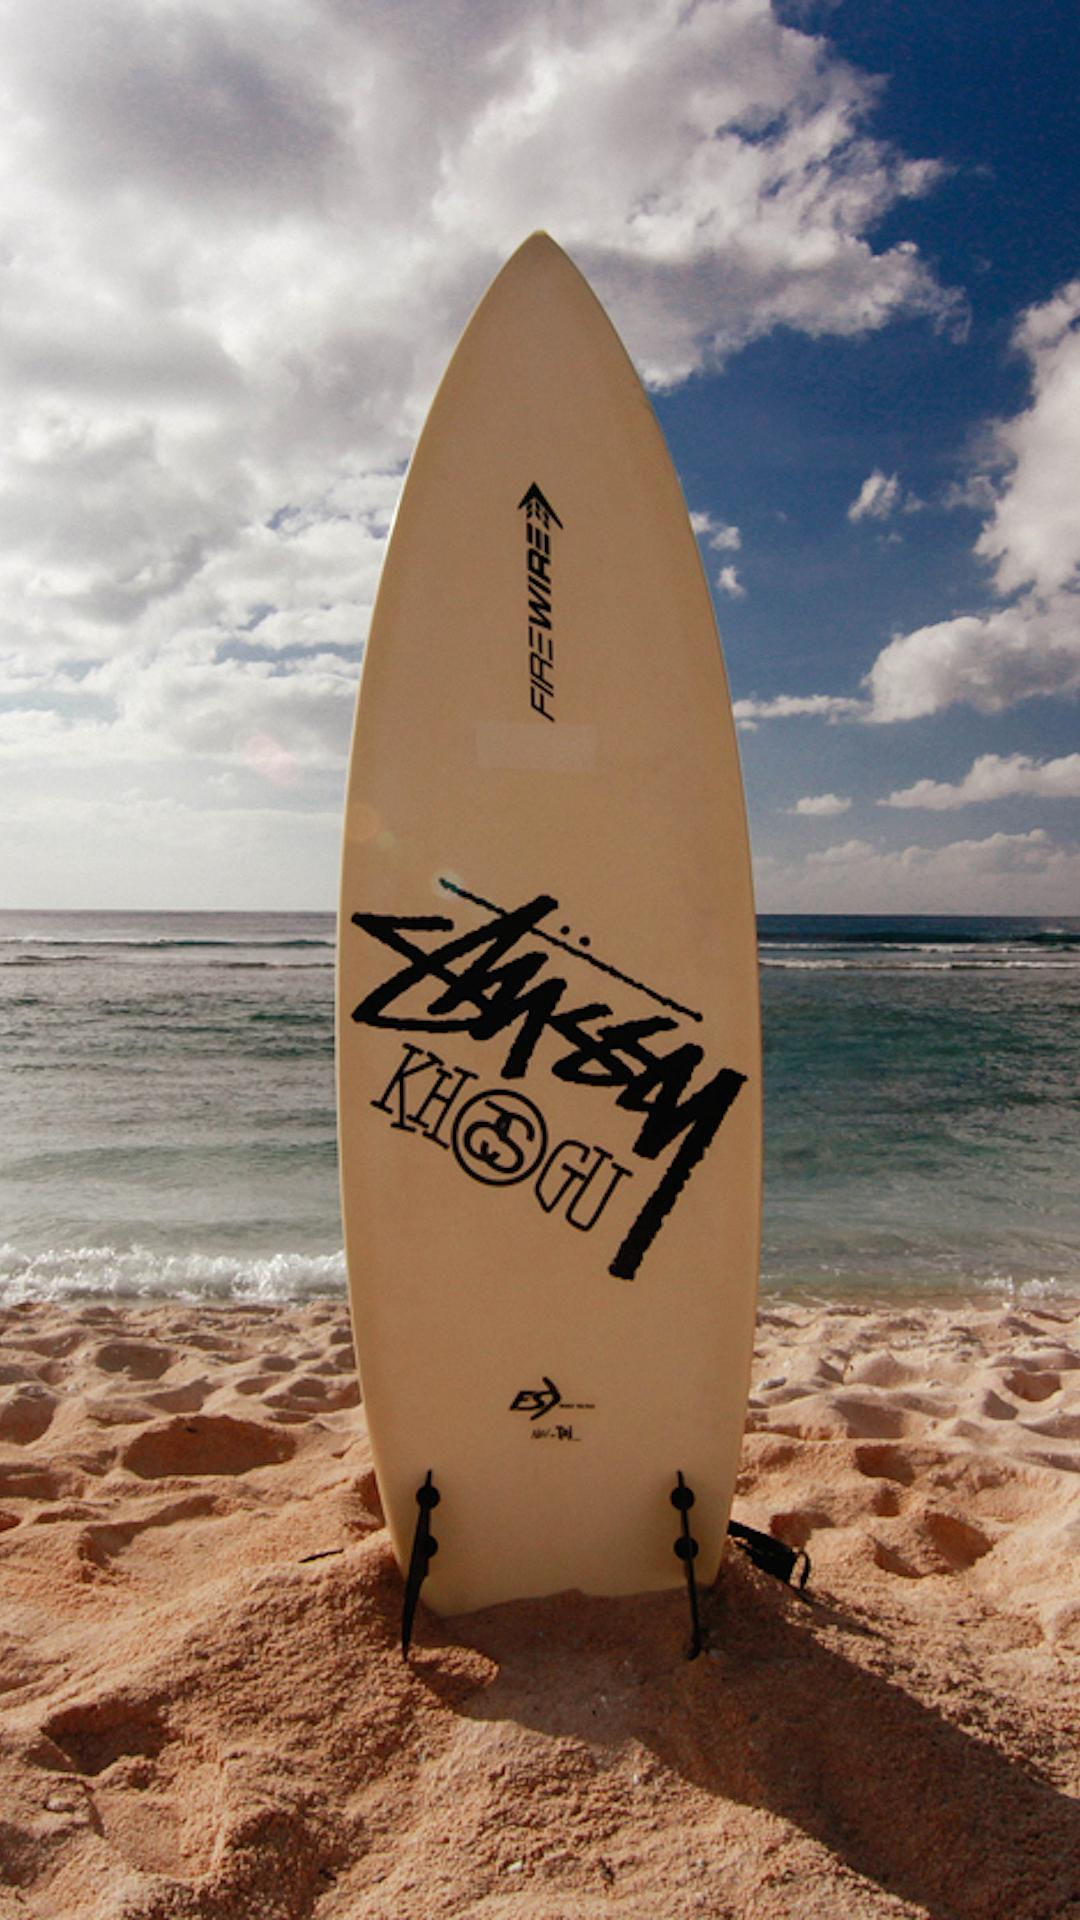 Stussy Wallpaper Iphone Posted By Sarah Johnson